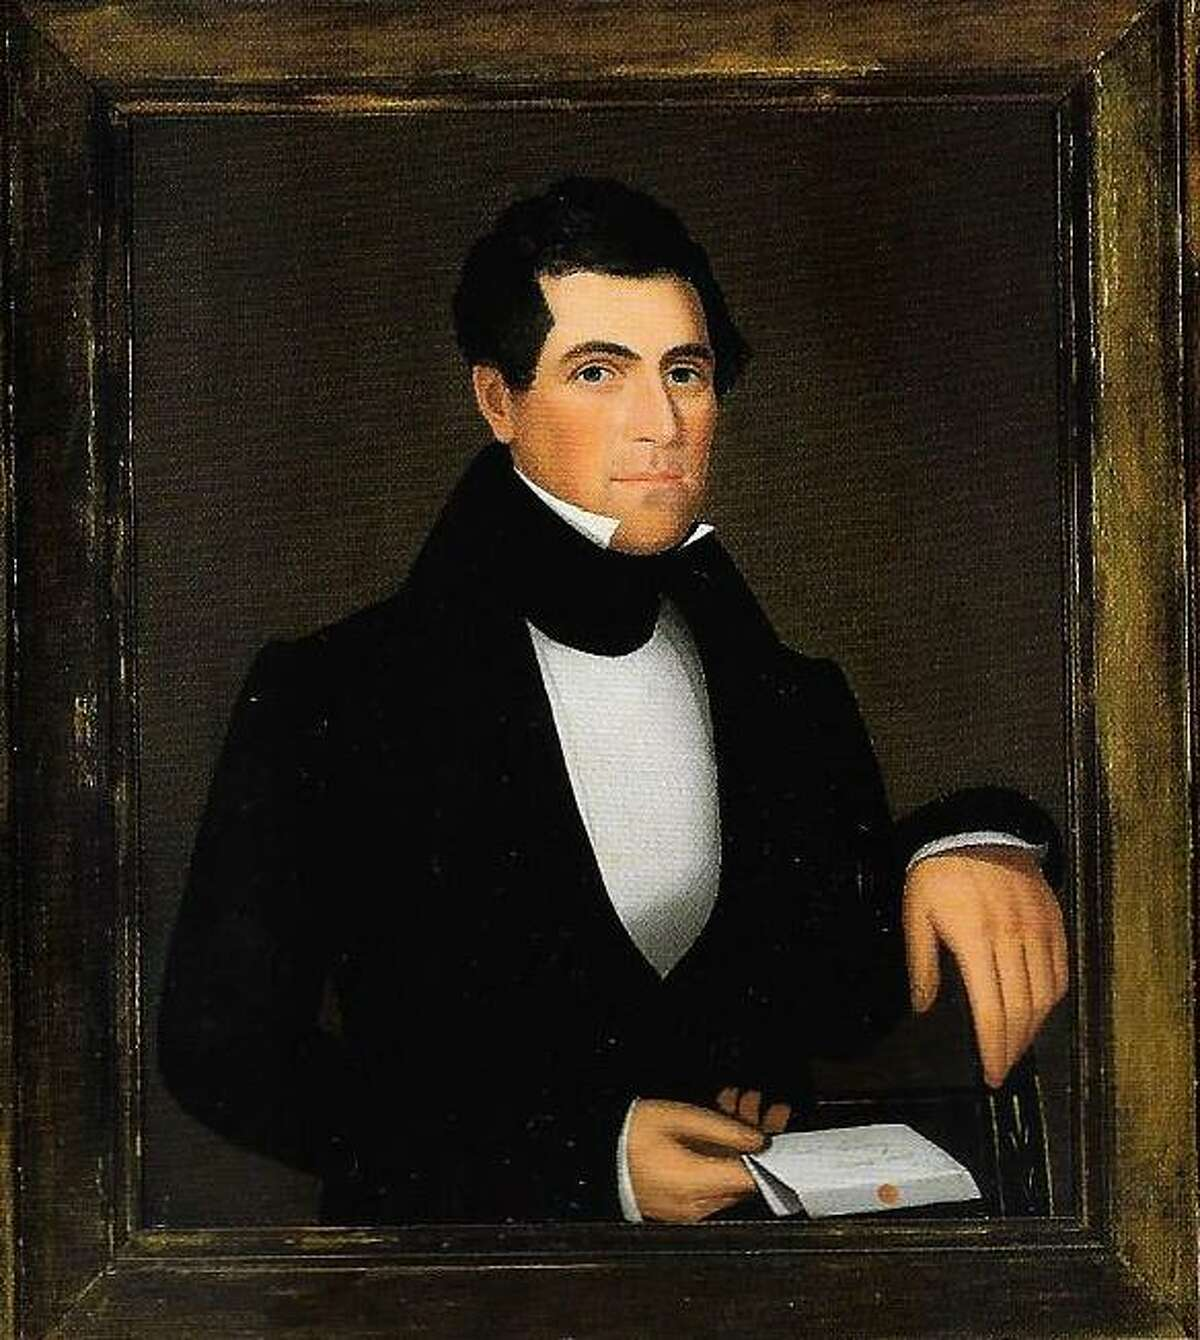 A portrait of Preston Wing, painted by Ammi Phillips.